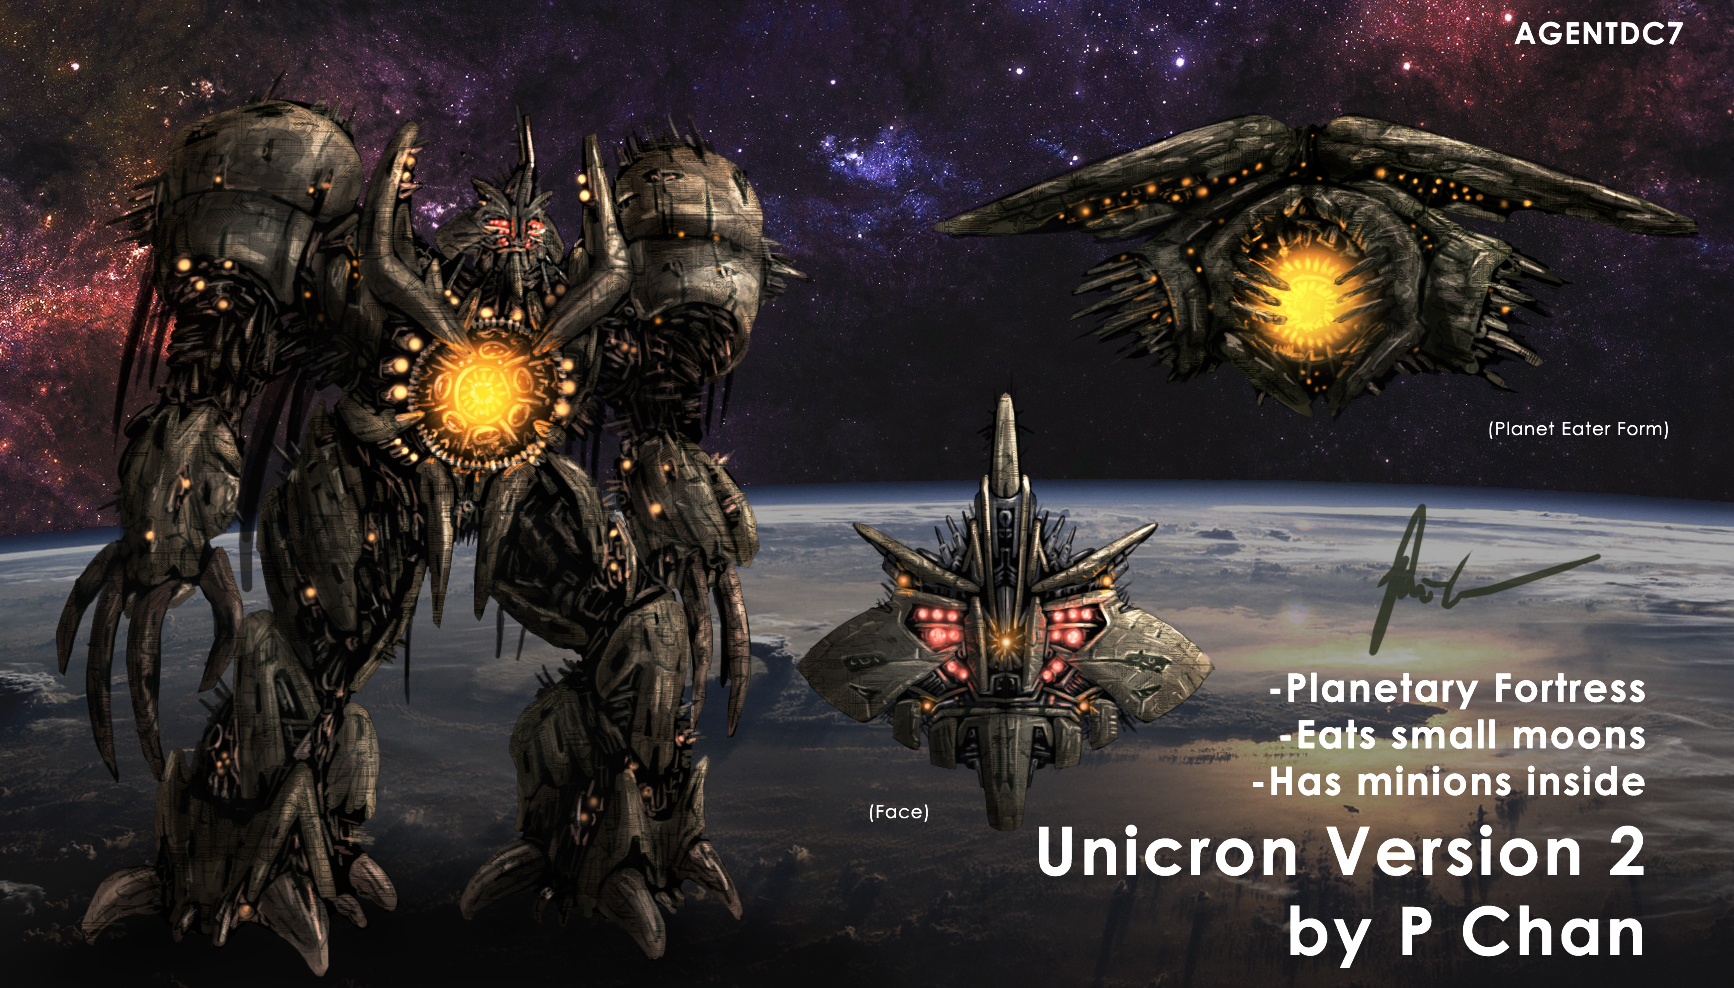 Transformers Movie Unicron 2 by agentdc7 on DeviantArt